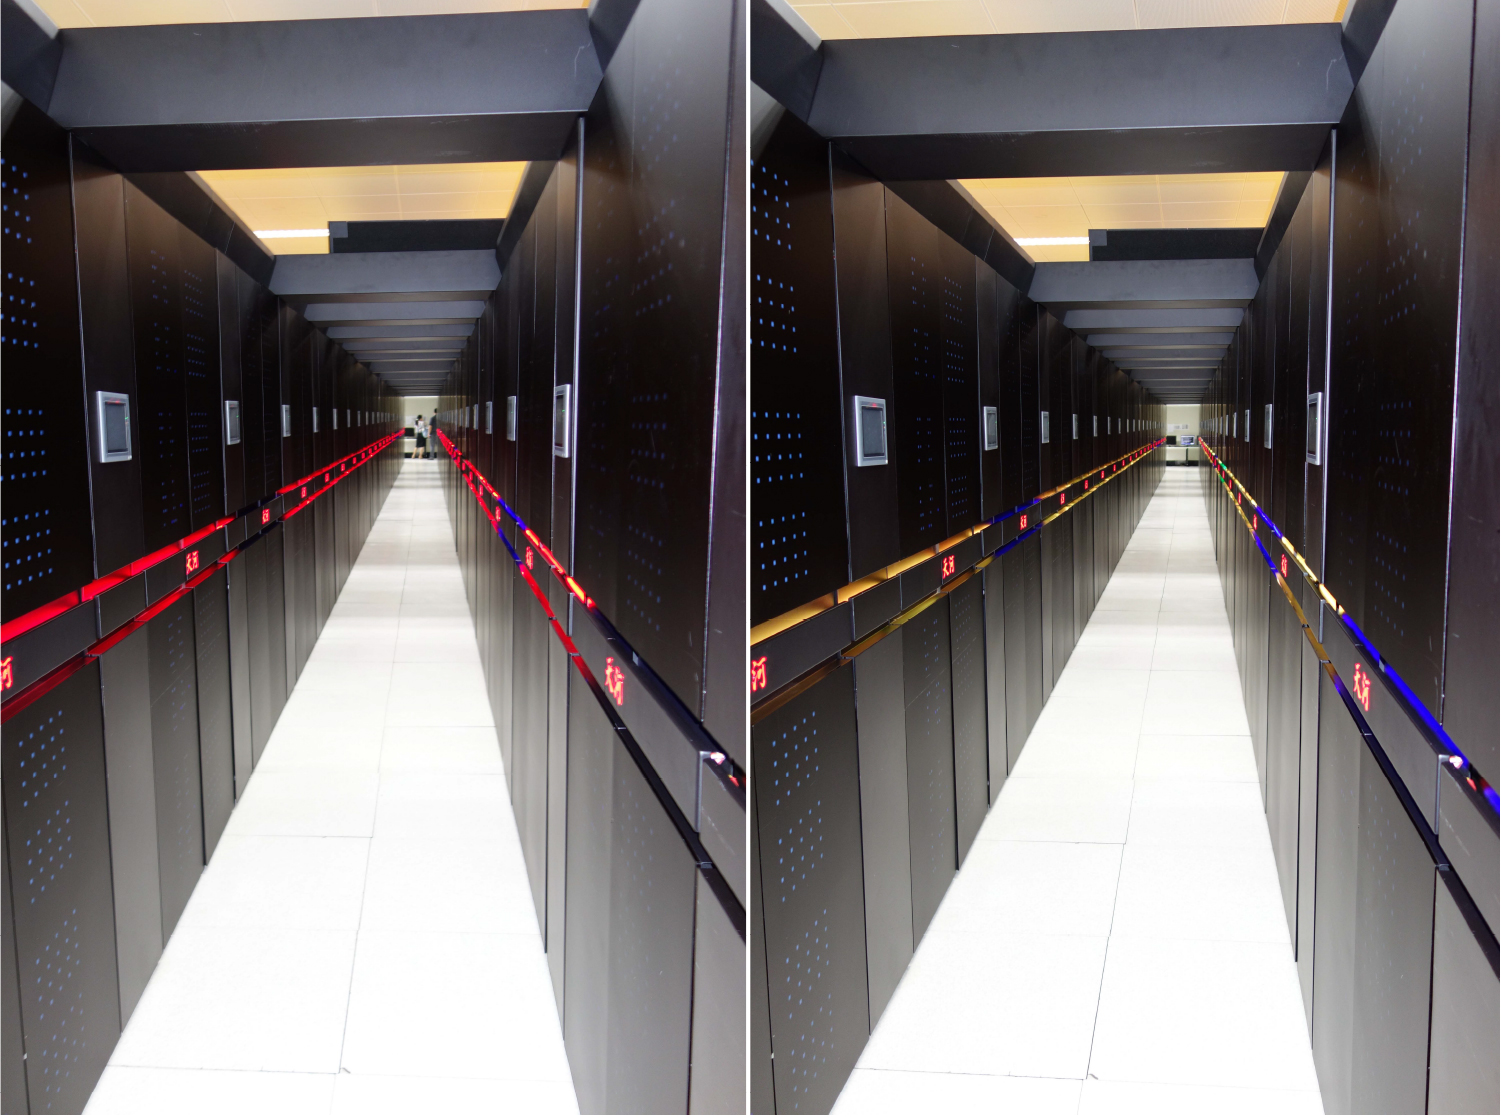 Supercomputer Marks China's Growing Tech Prowess